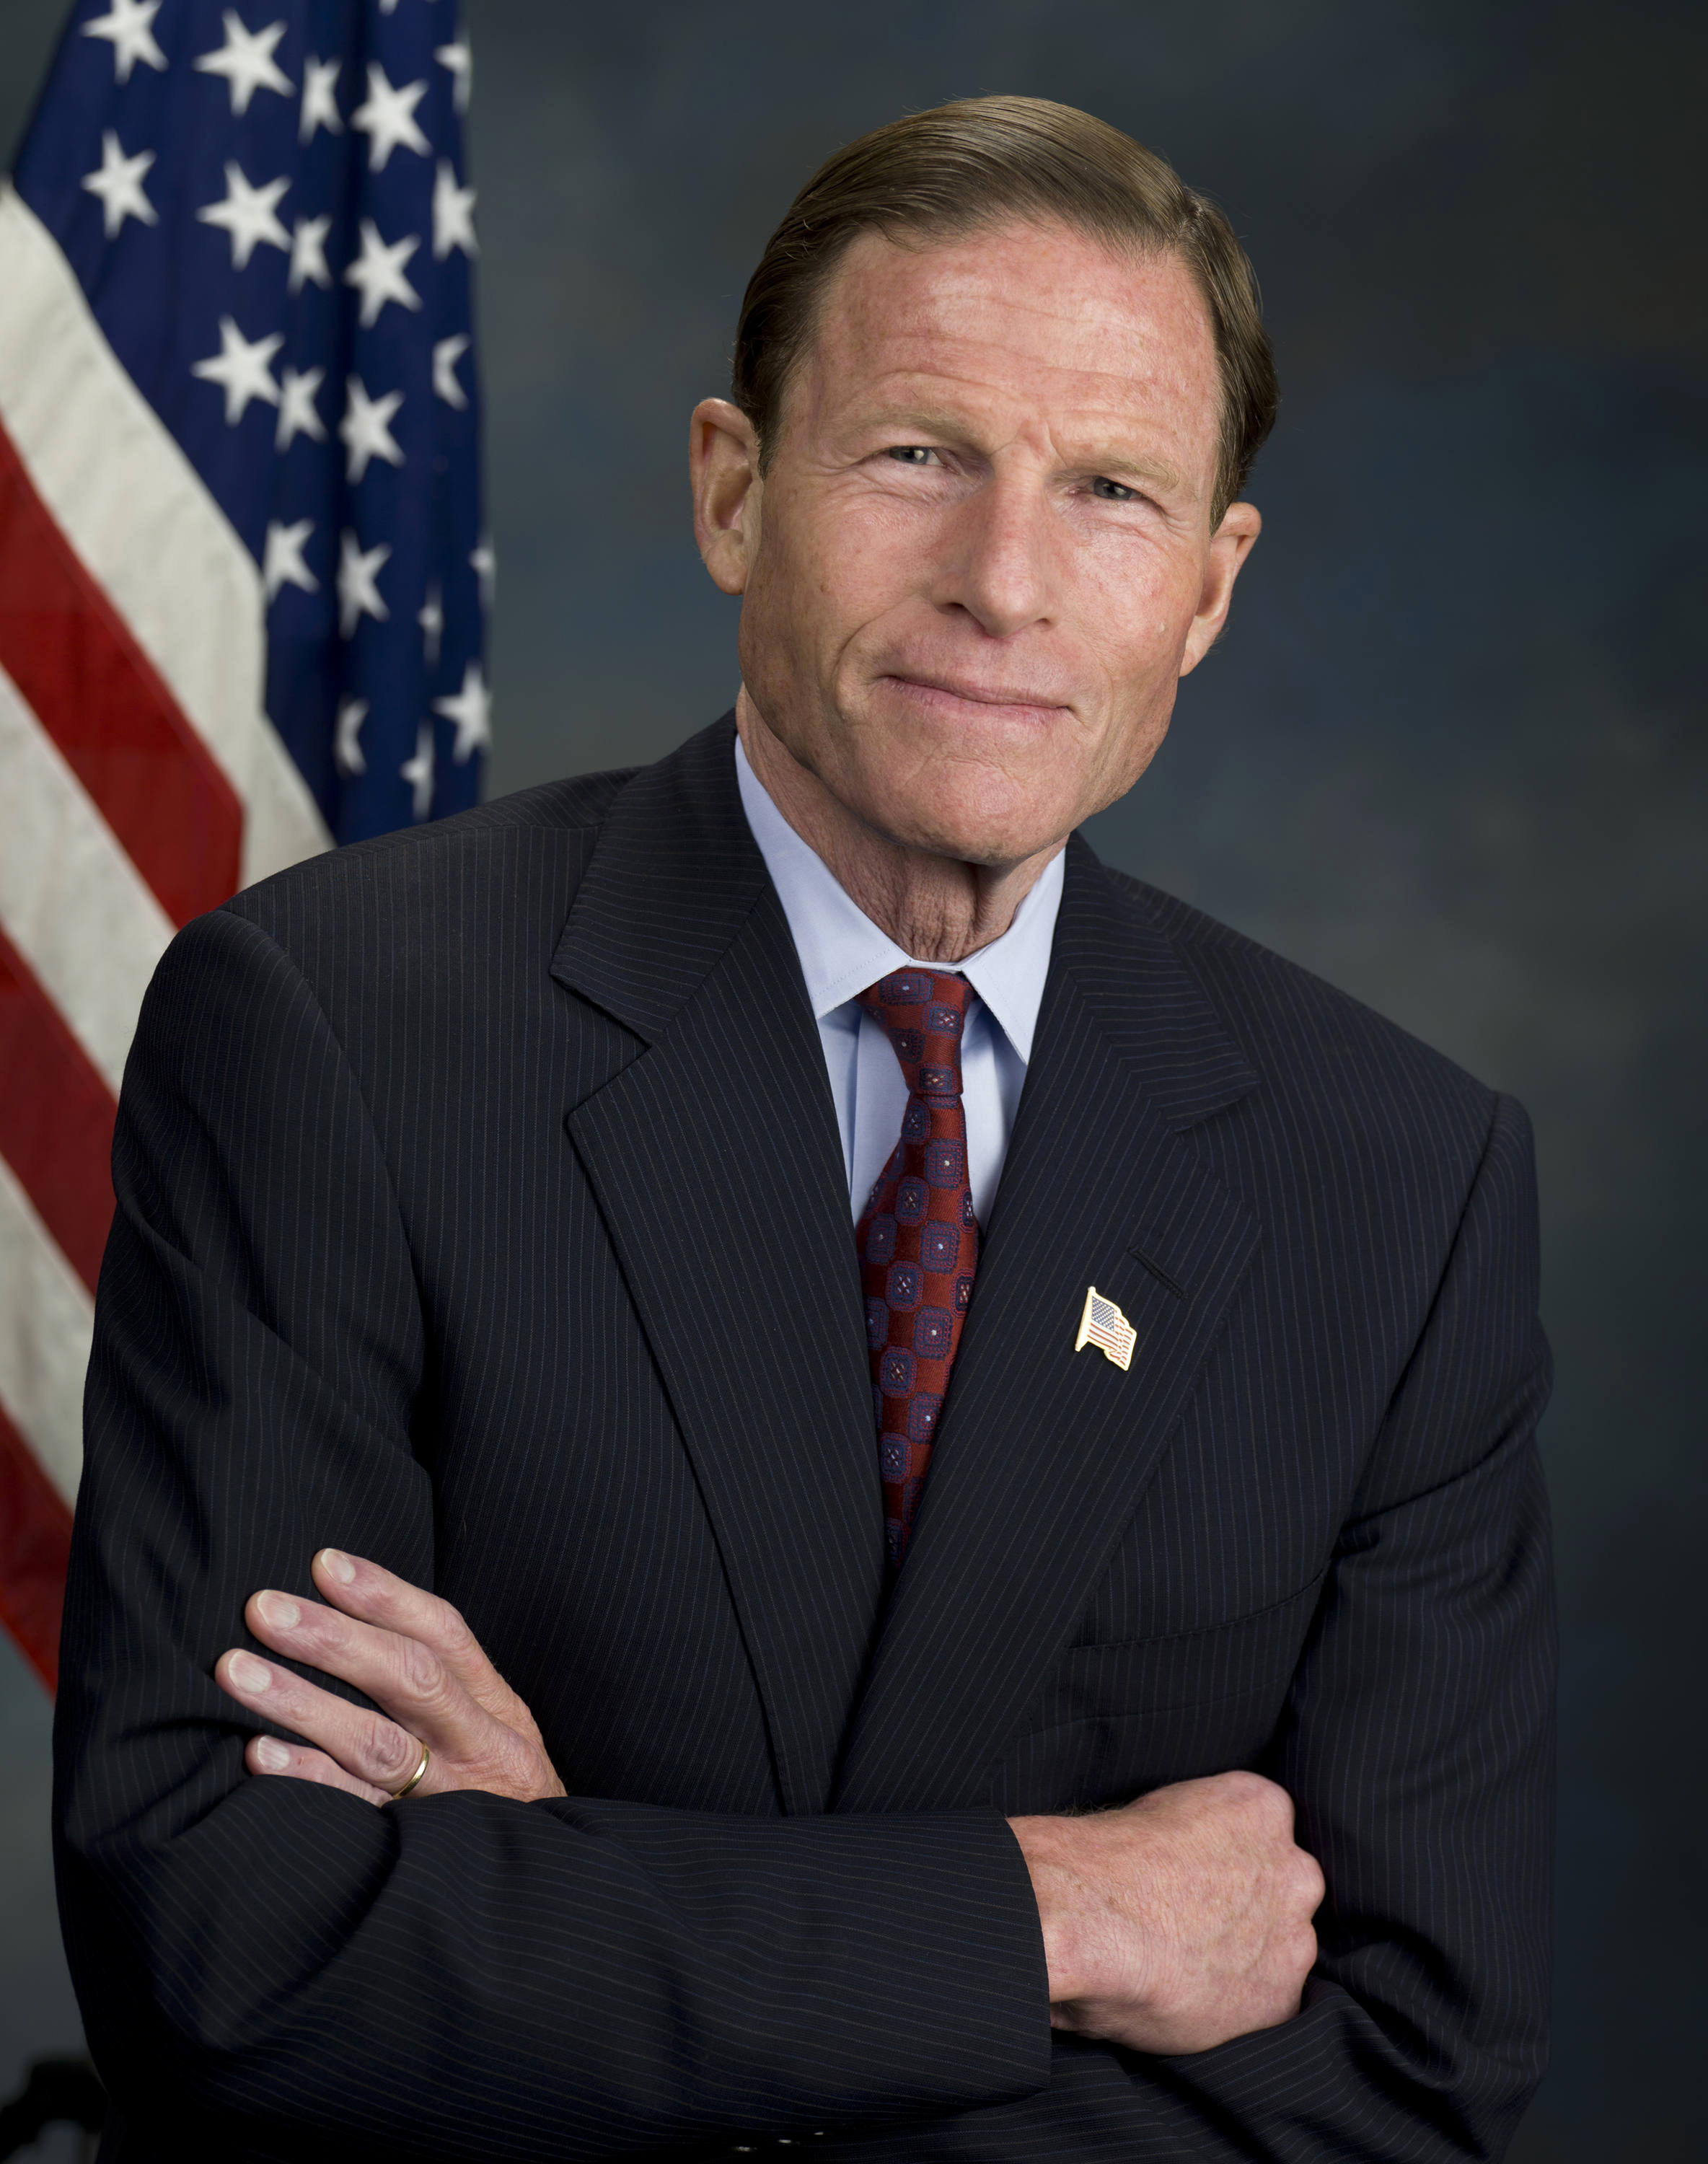 Richard_Blumenthal_Official_Portrait.jpg